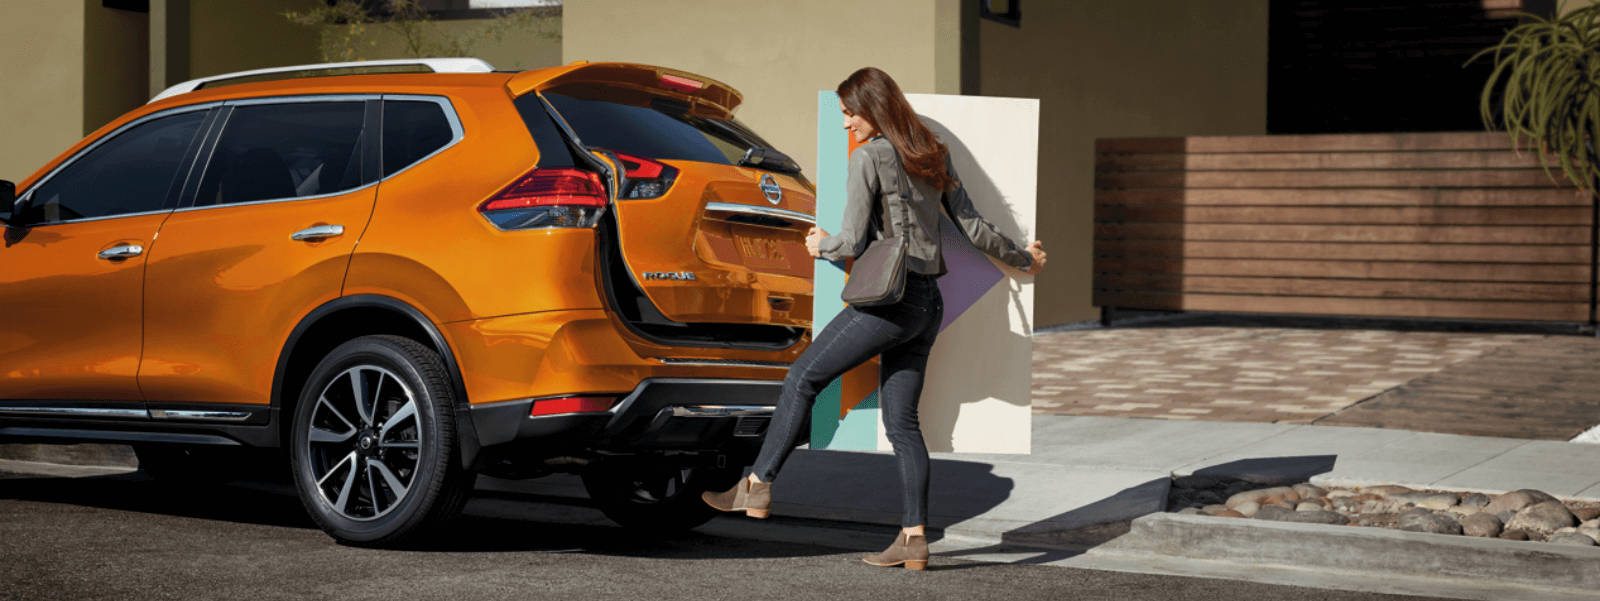 A woman putting a piece of art in the back of the trunk of her Nissan Rogue